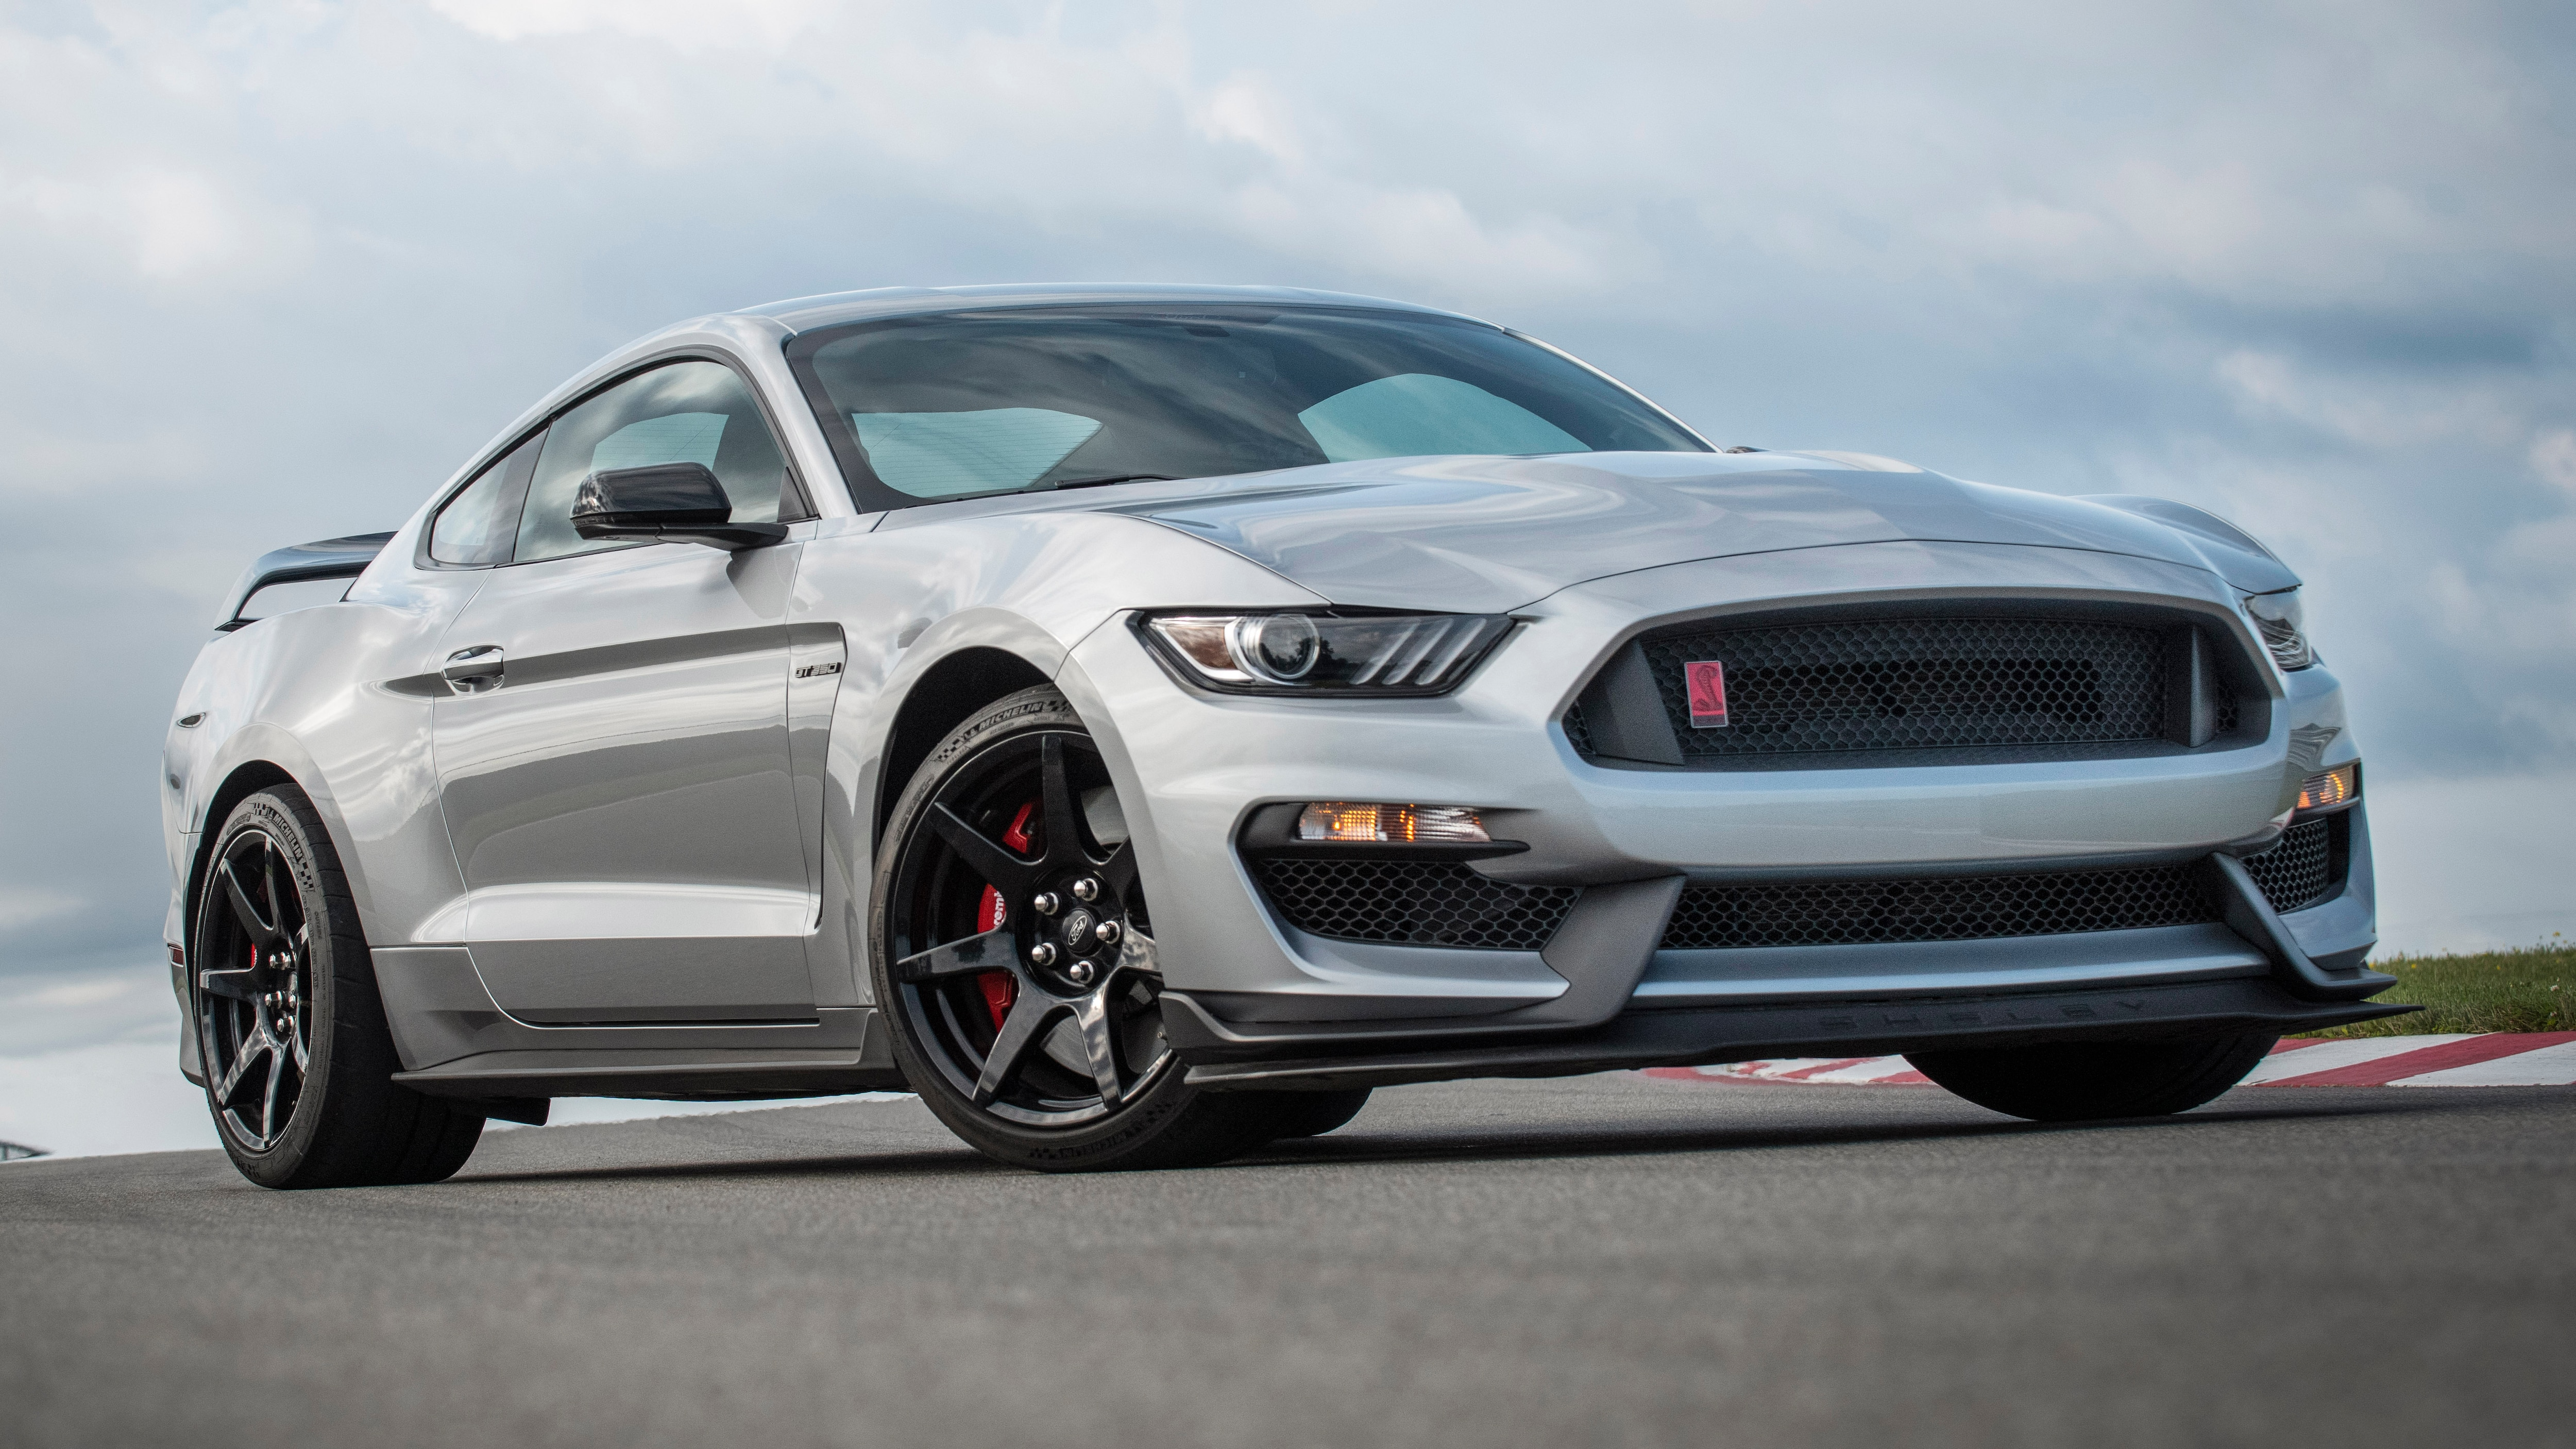 2020 Ford Mustang Review.2020 Ford Mustang Shelby Gt350r Review Still Magical